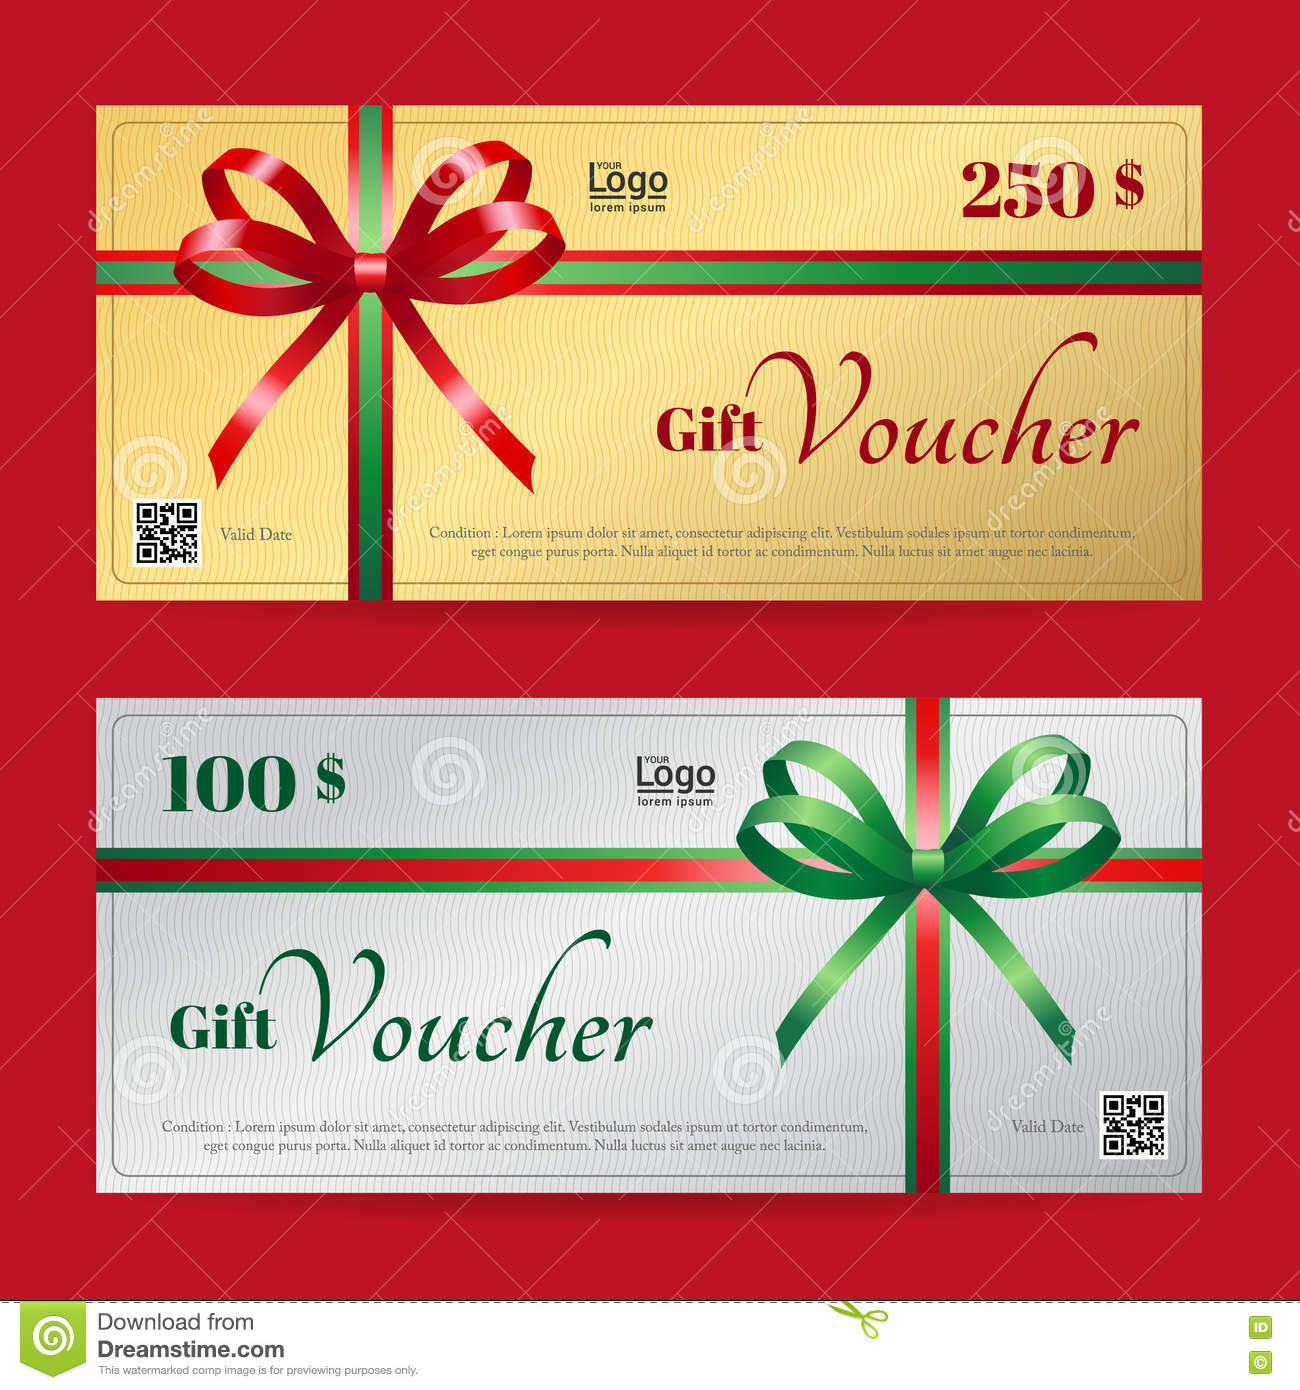 christmas voucher templates free download - Military.bralicious.co